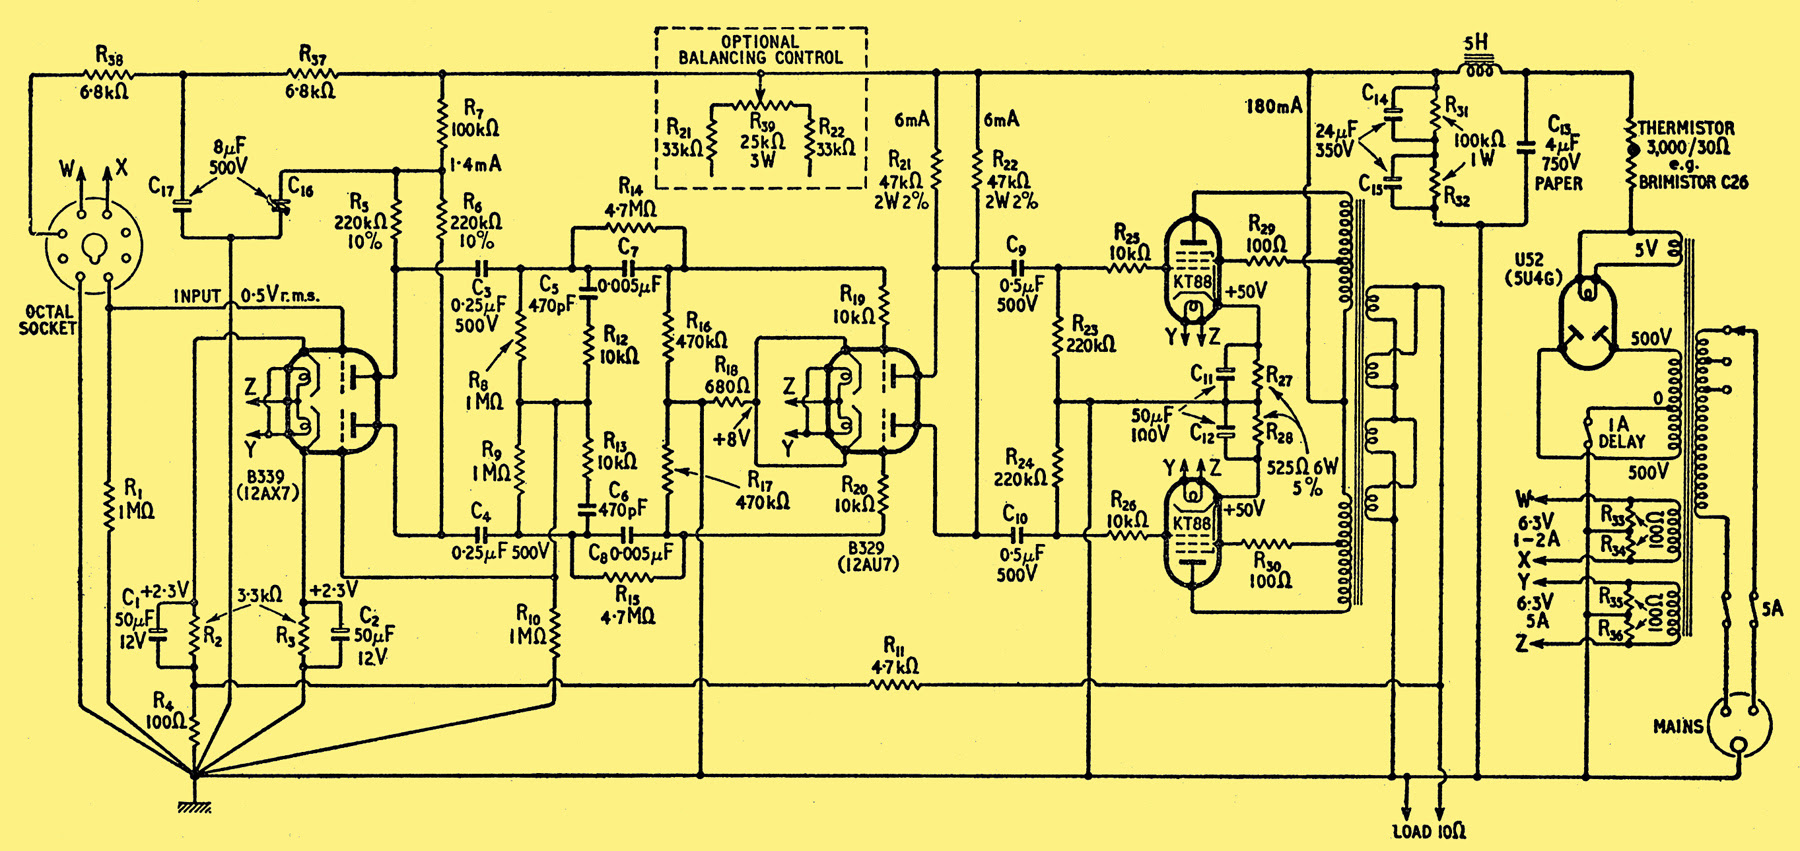 2000 W Inverter Circuit Diagram Wiring Library Schematic Npa 4000 Power Amp Plete Of The Main Ampilifier Resistors Are Rated